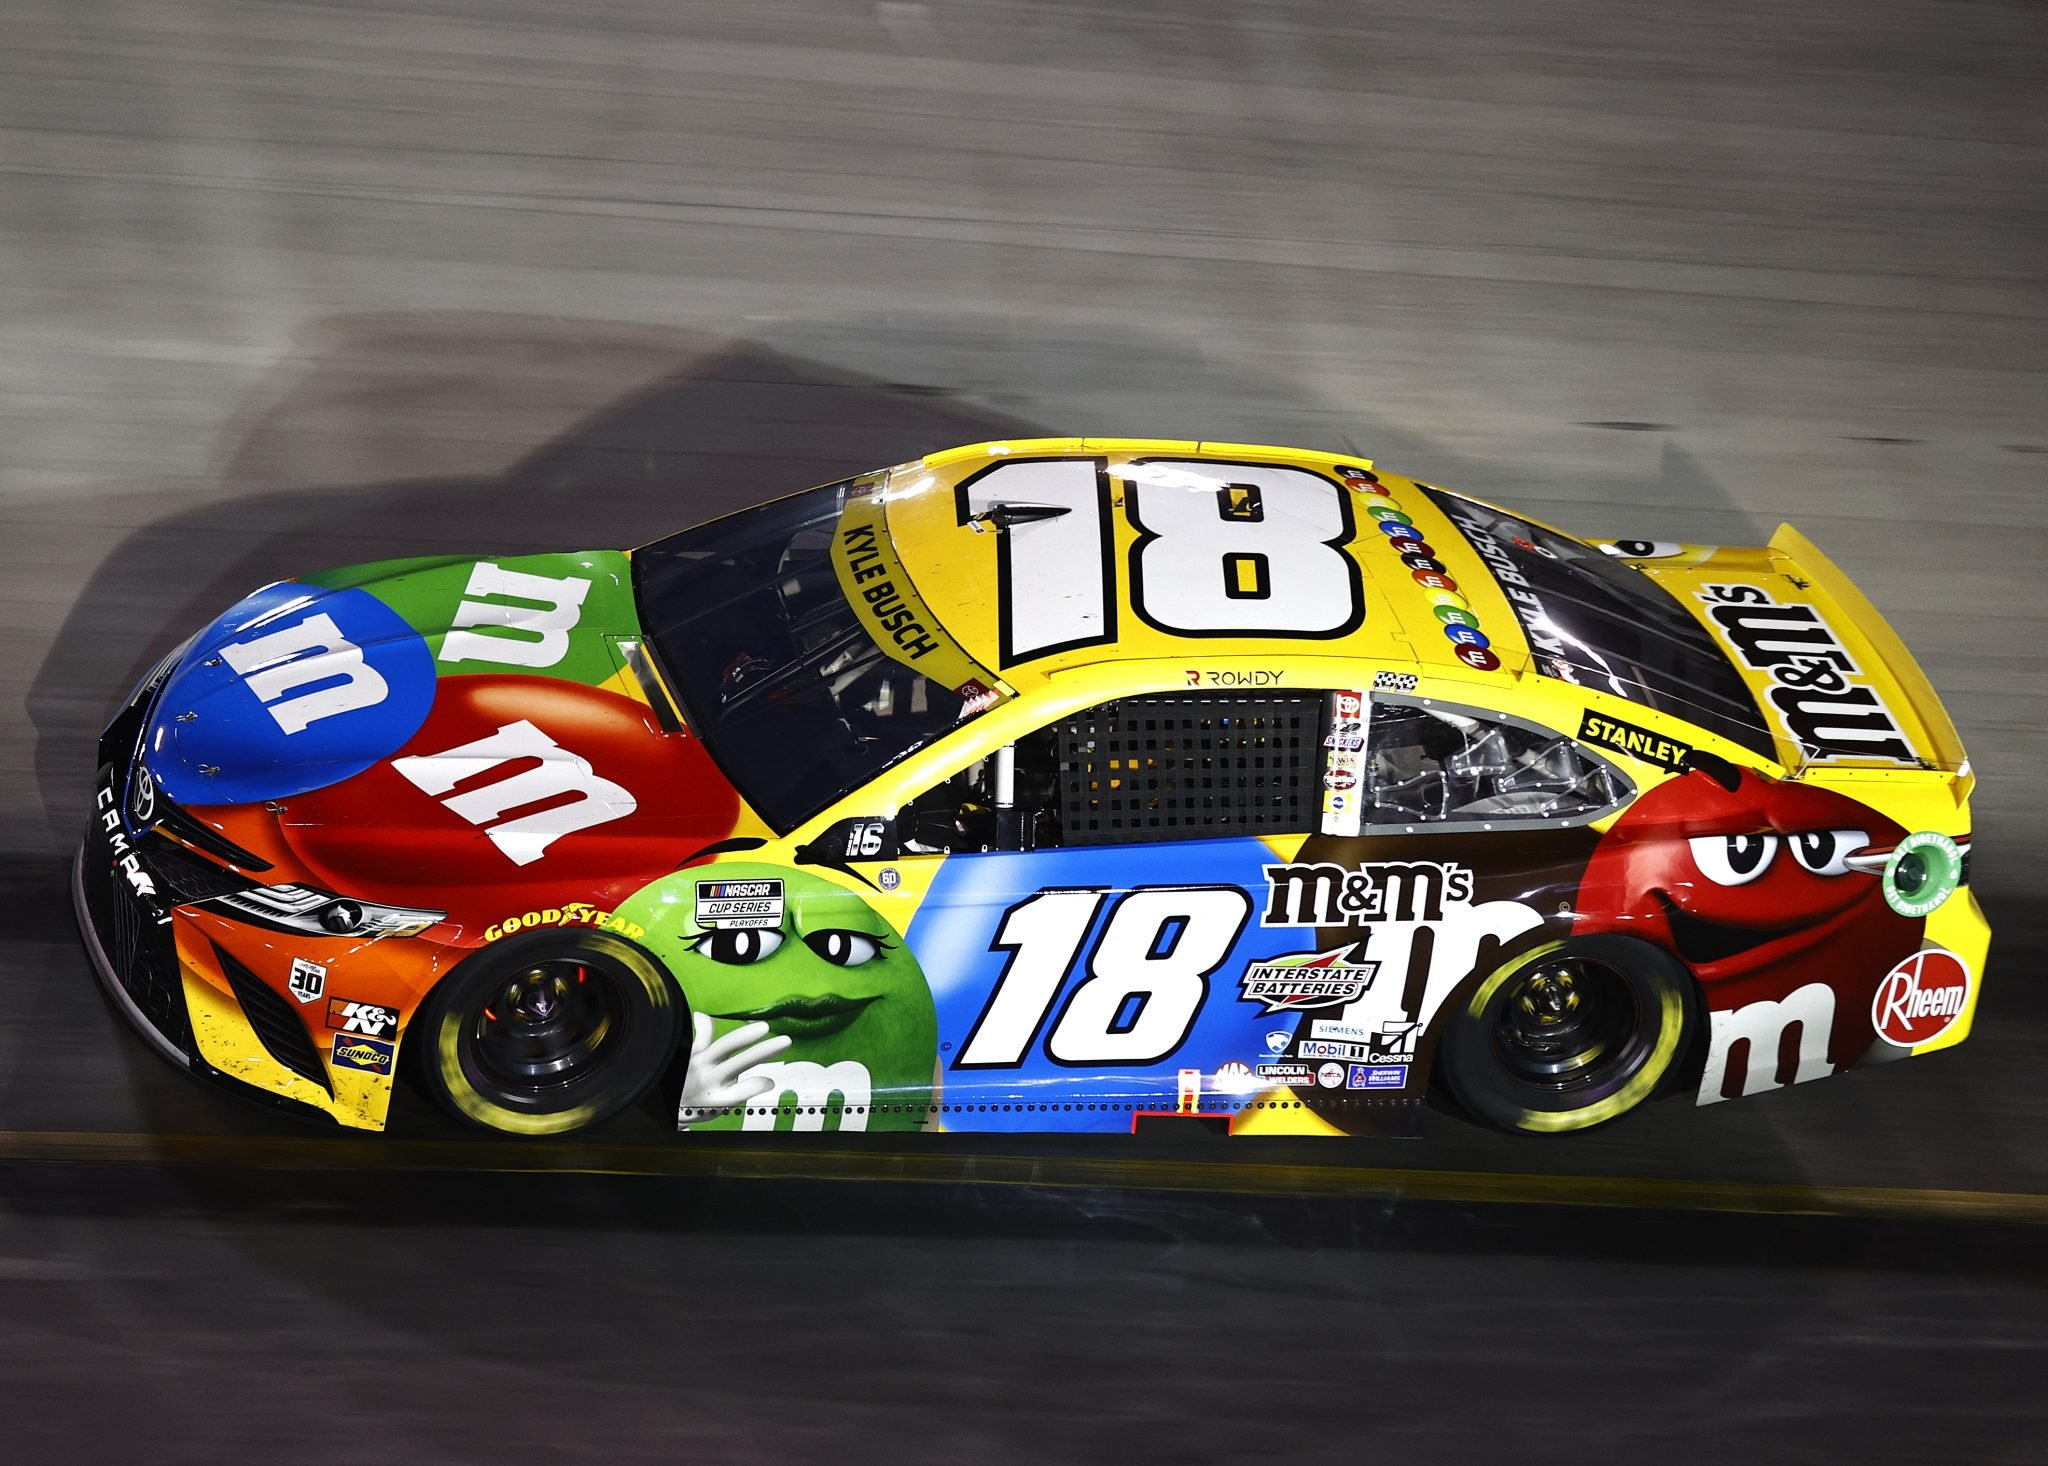 BRISTOL, TENNESSEE - SEPTEMBER 18: Kyle Busch, driver of the #18 M&M's Toyota, drives during the NASCAR Cup Series Bass Pro Shops Night Race at Bristol Motor Speedway on September 18, 2021 in Bristol, Tennessee. (Photo by Jared C. Tilton/Getty Images) | Getty Images